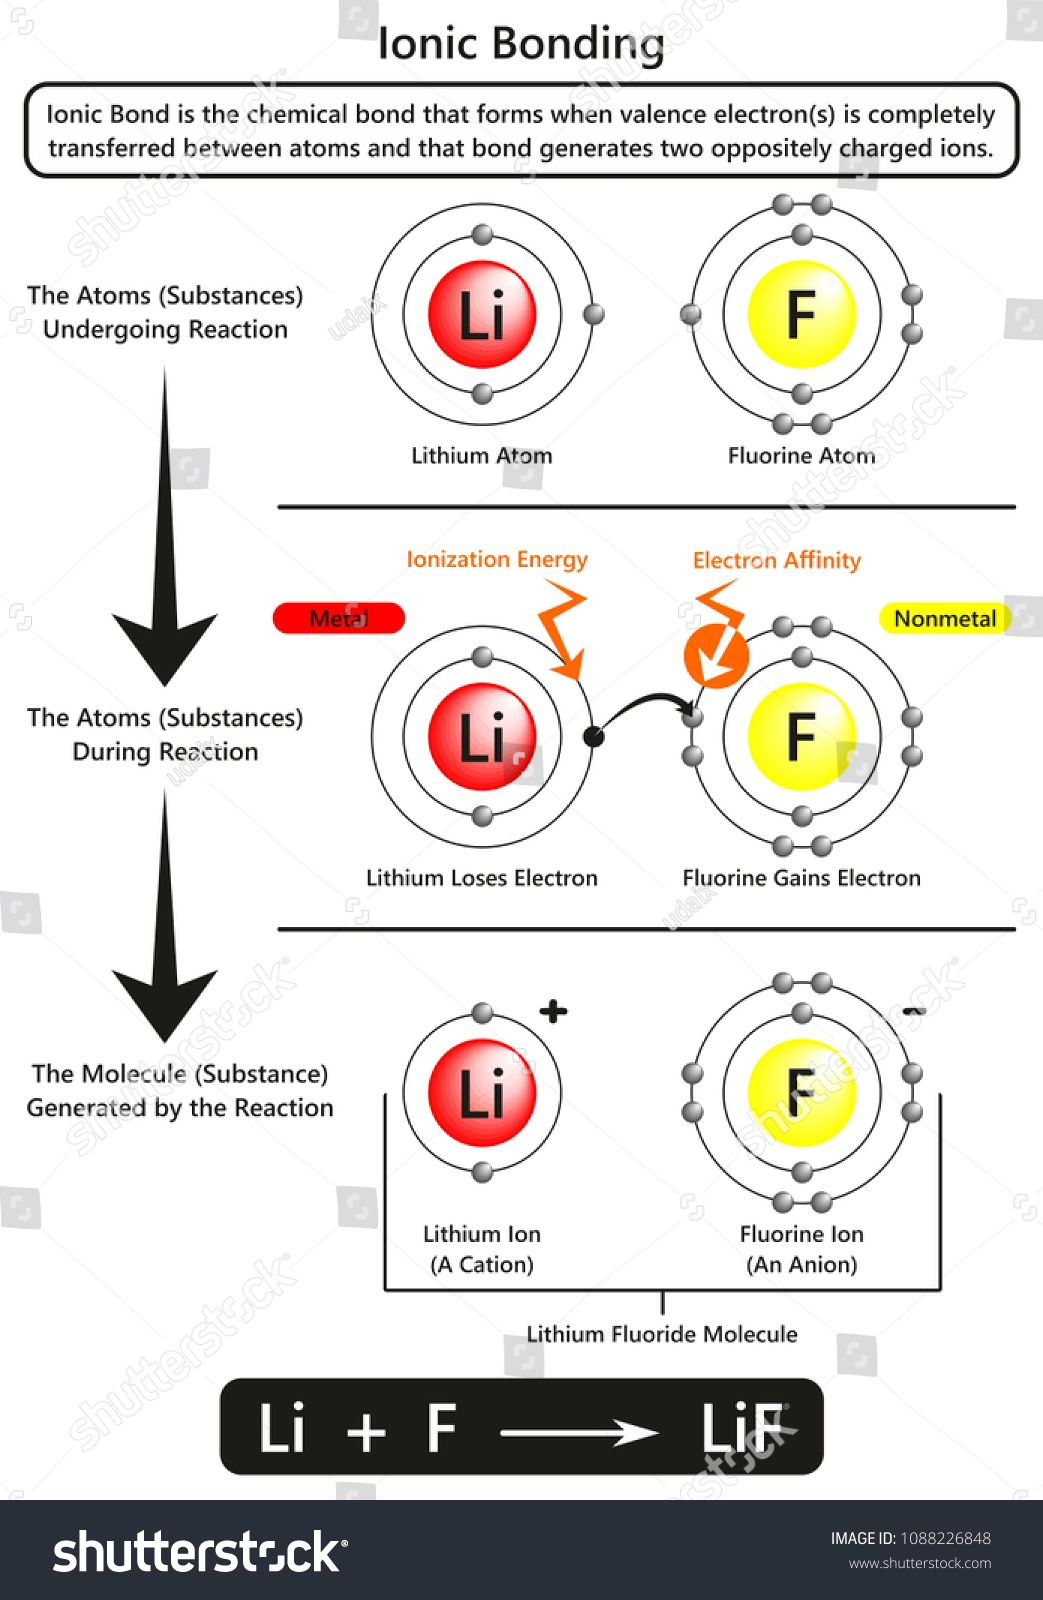 Ionic Bonding Infographic Diagram With Example Of Ionic Bond Between Lithium And Fluorine Atoms Showing Ioniz In 2020 Ionic Bonding Electron Affinity Ionization Energy